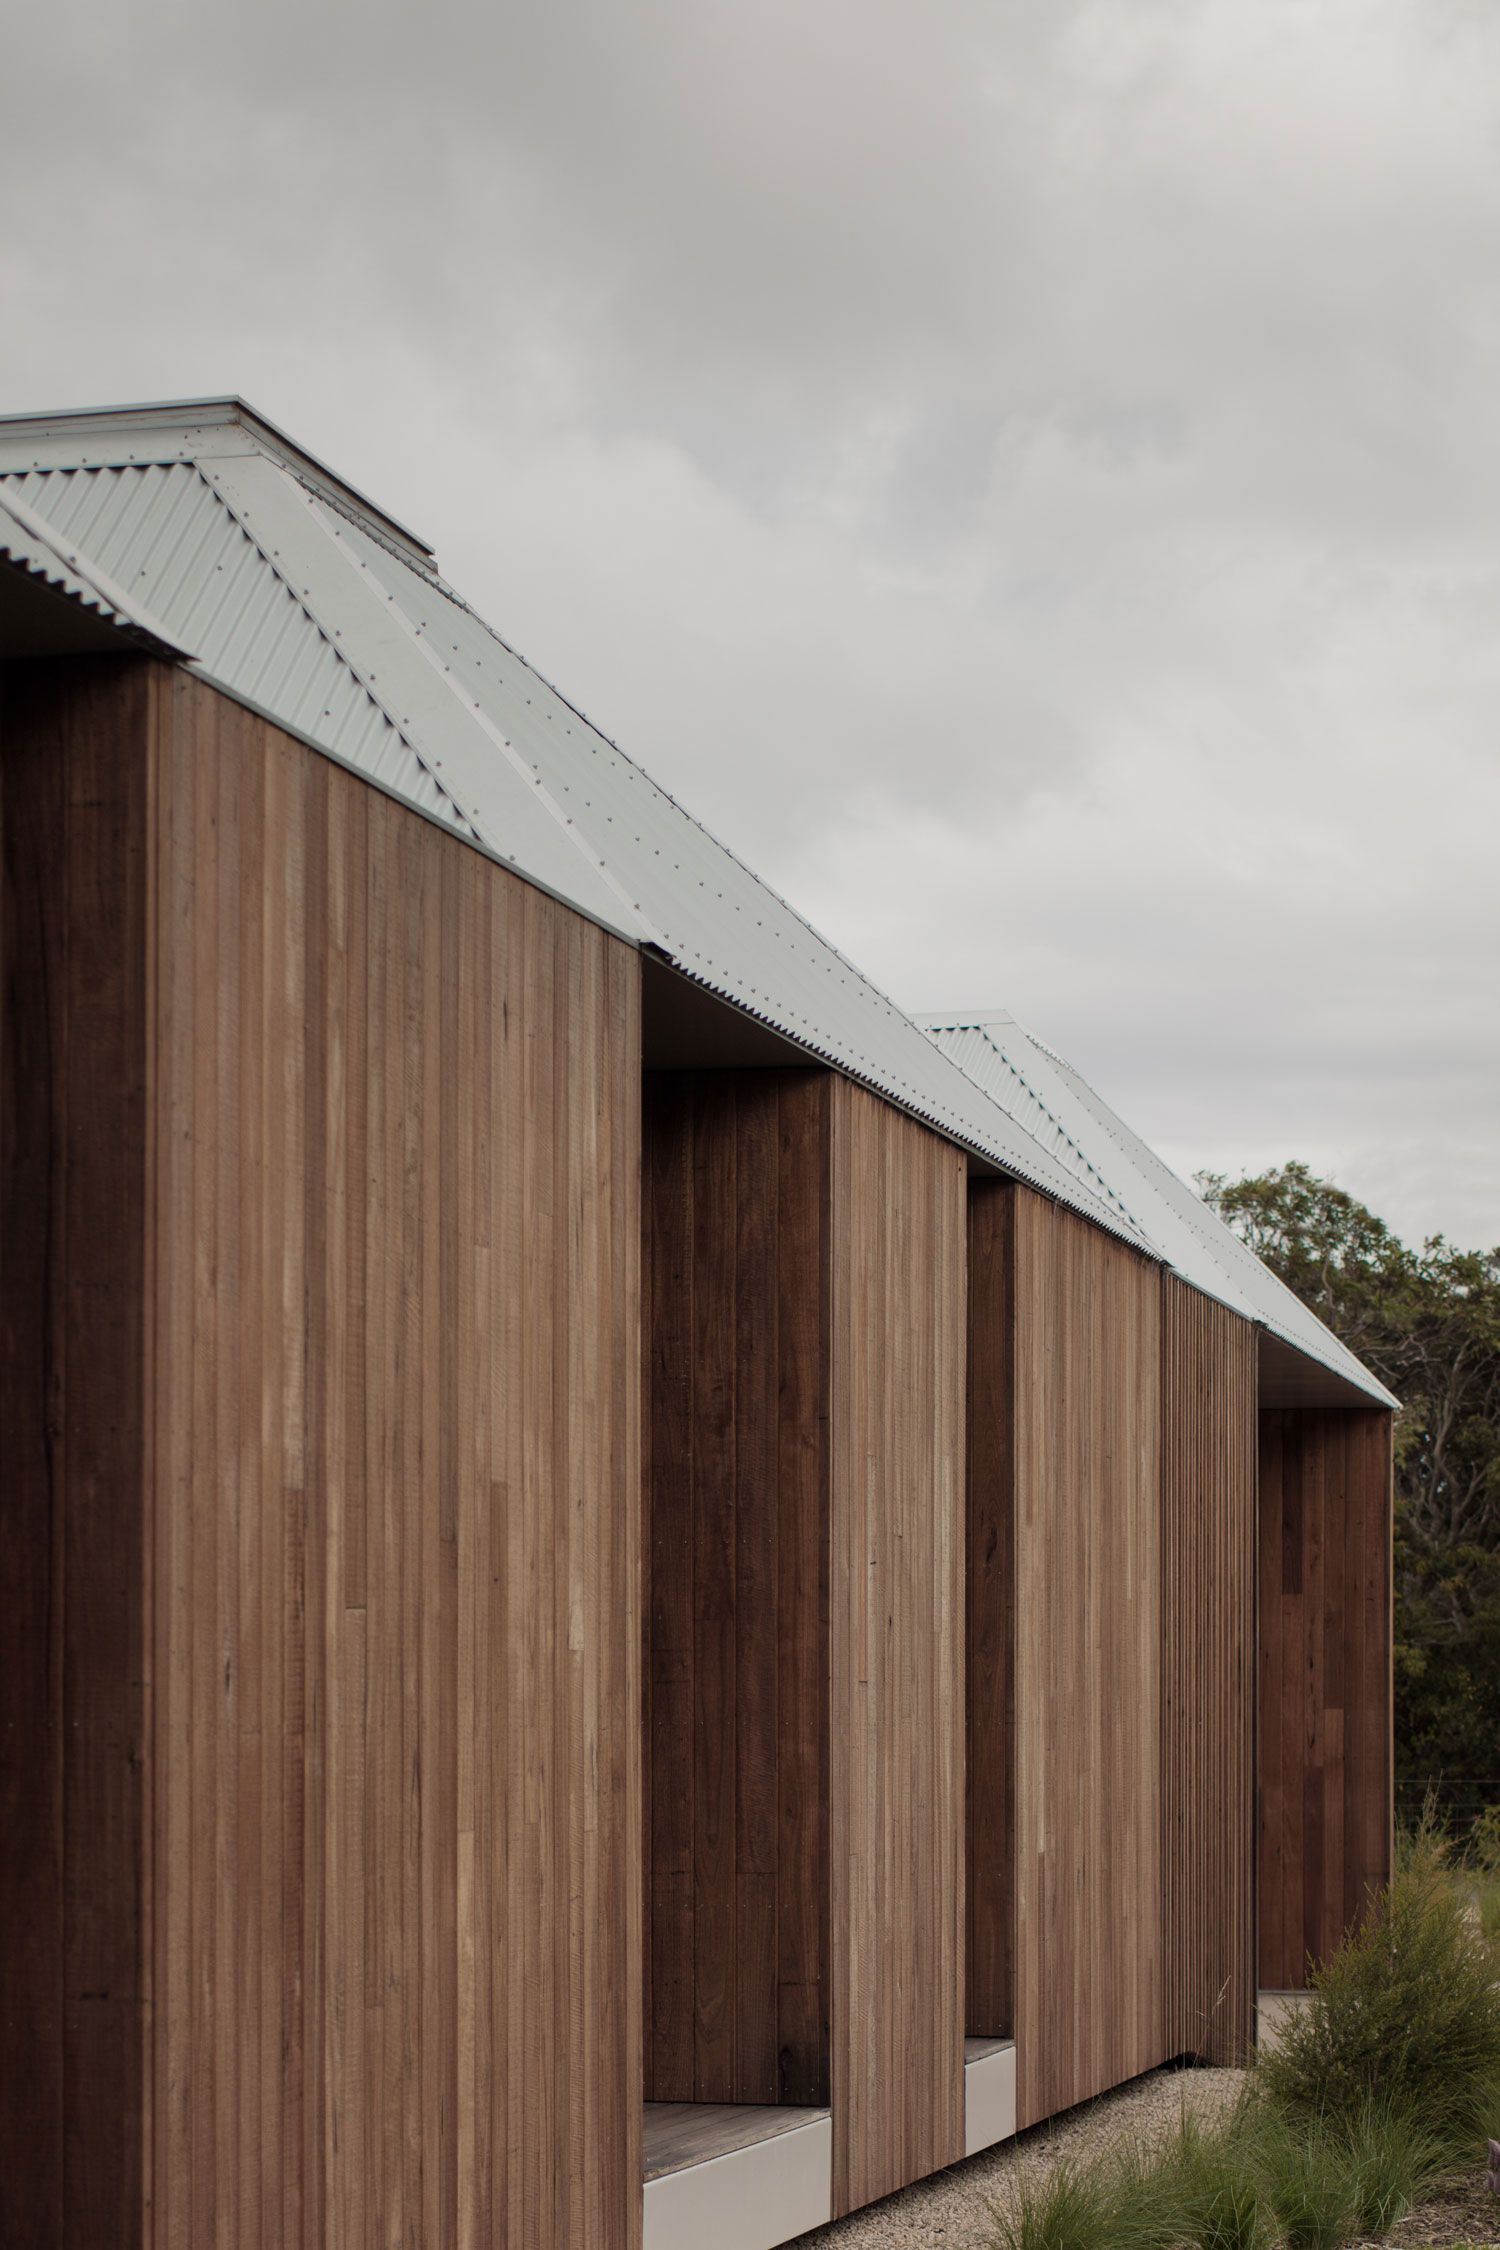 Separated Based On Functionality, Each Of The Spaces Is An Expression Of Its Purpose Creating A Sense Of The Cabin Holiday Home.